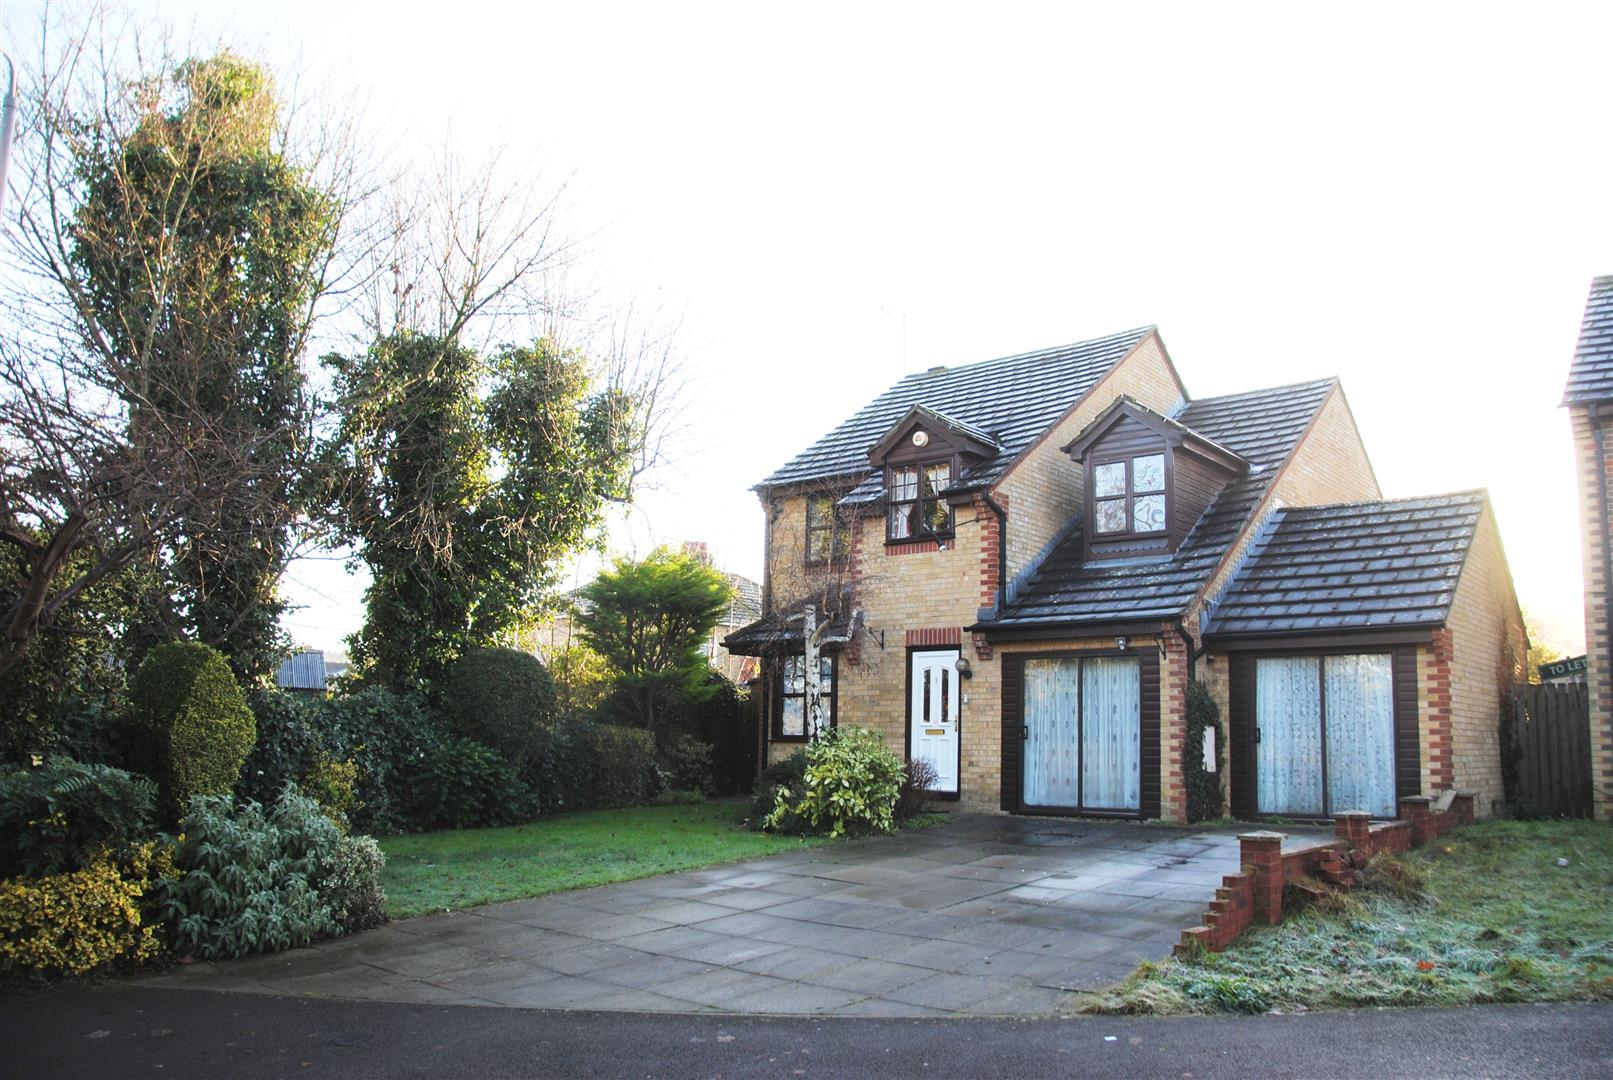 4 Bedrooms Detached House for sale in Dunsford Close, Swindon